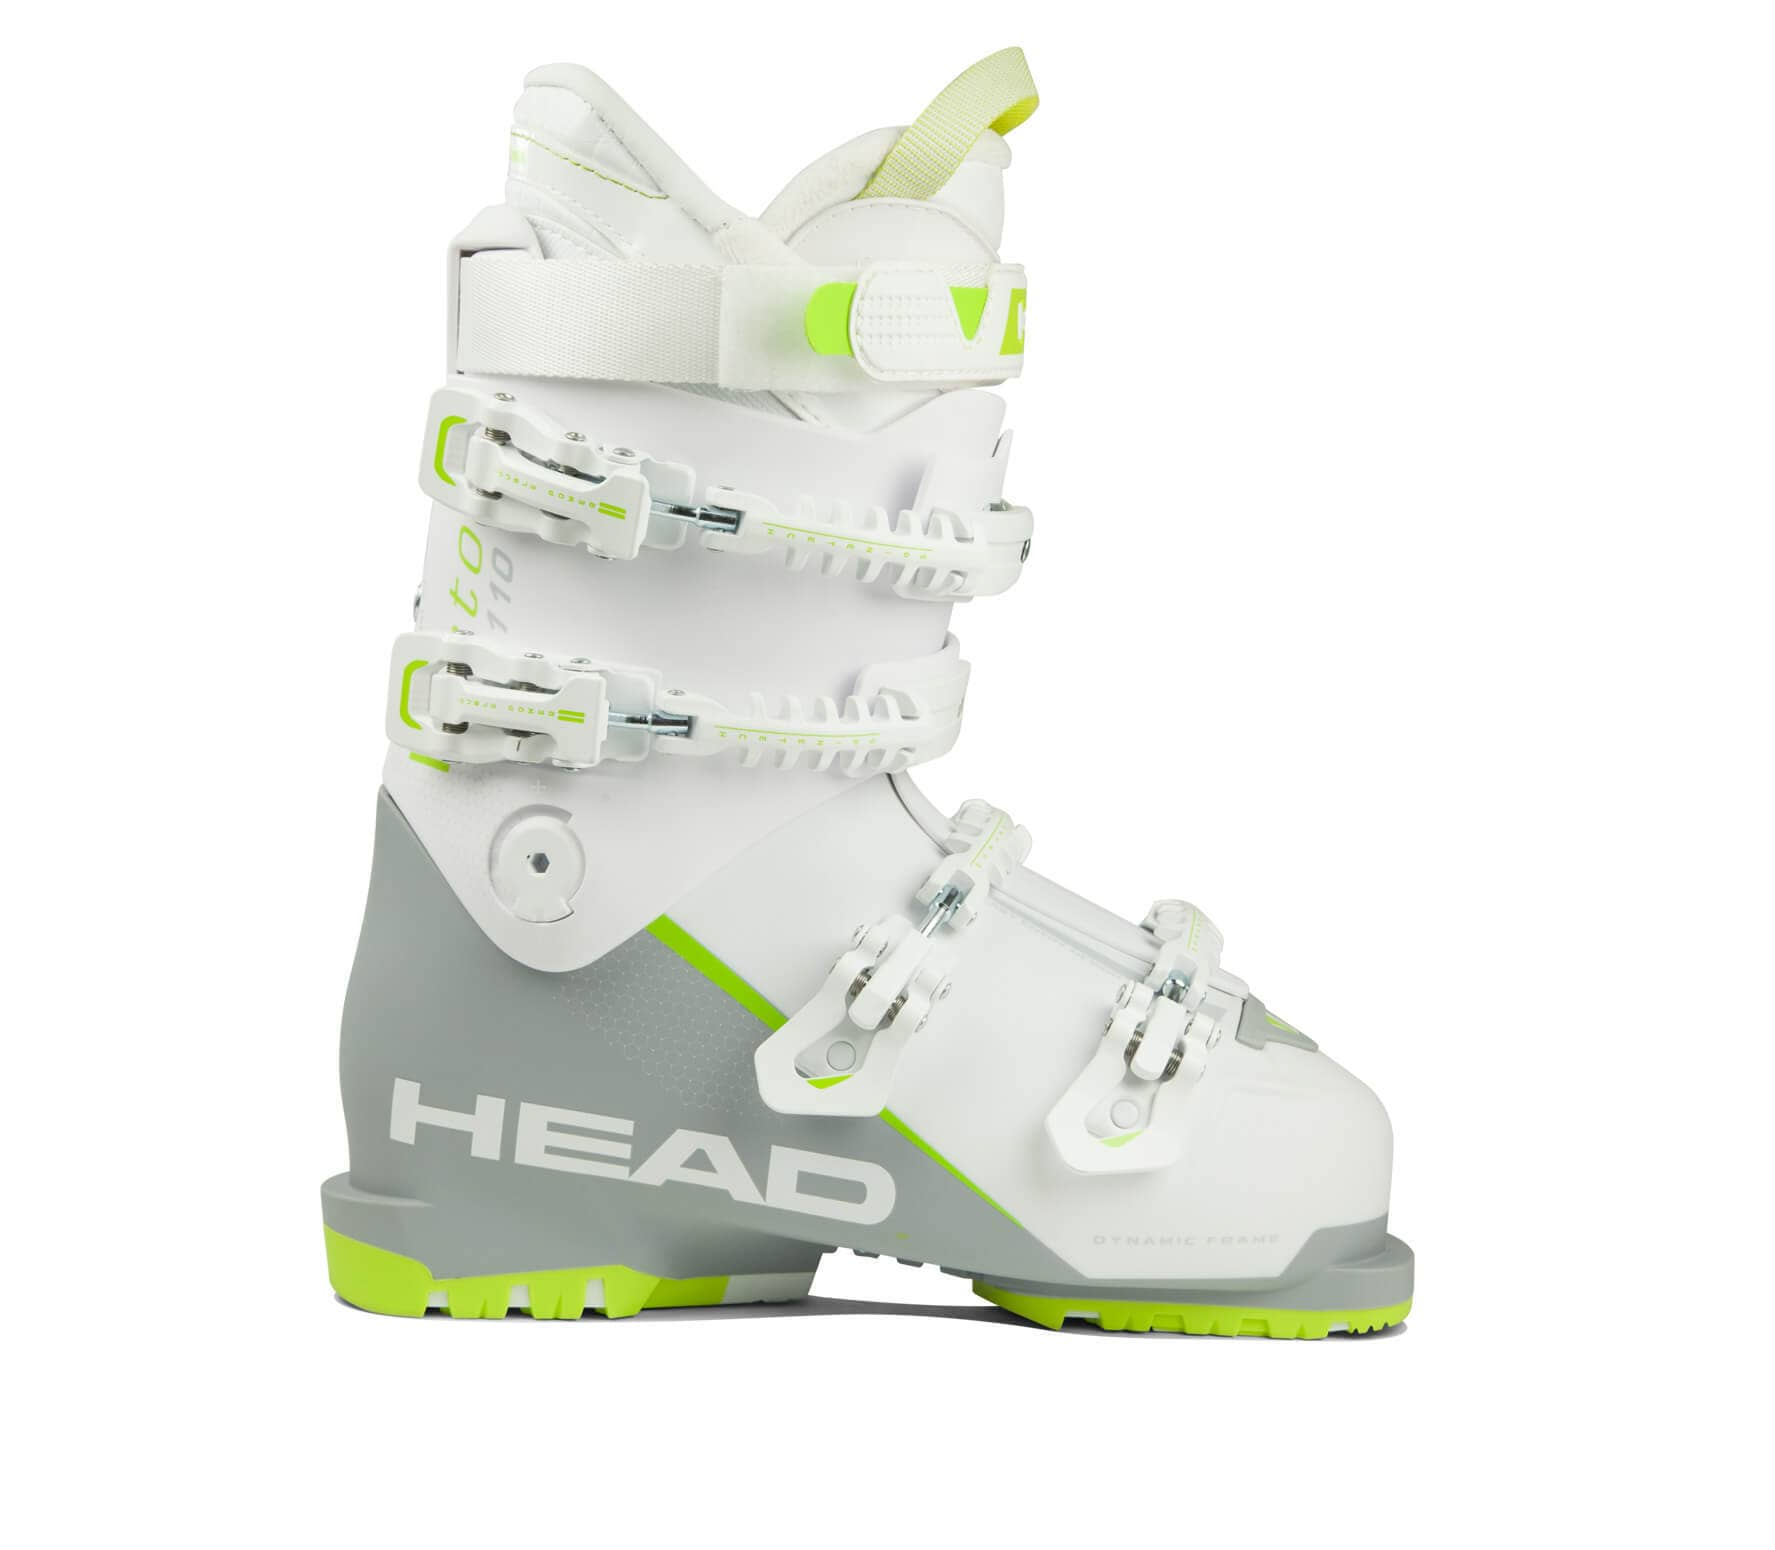 089b9965a46 Head - Vector Evo 110 women's ski boots 15/16 (white/green) - buy it ...